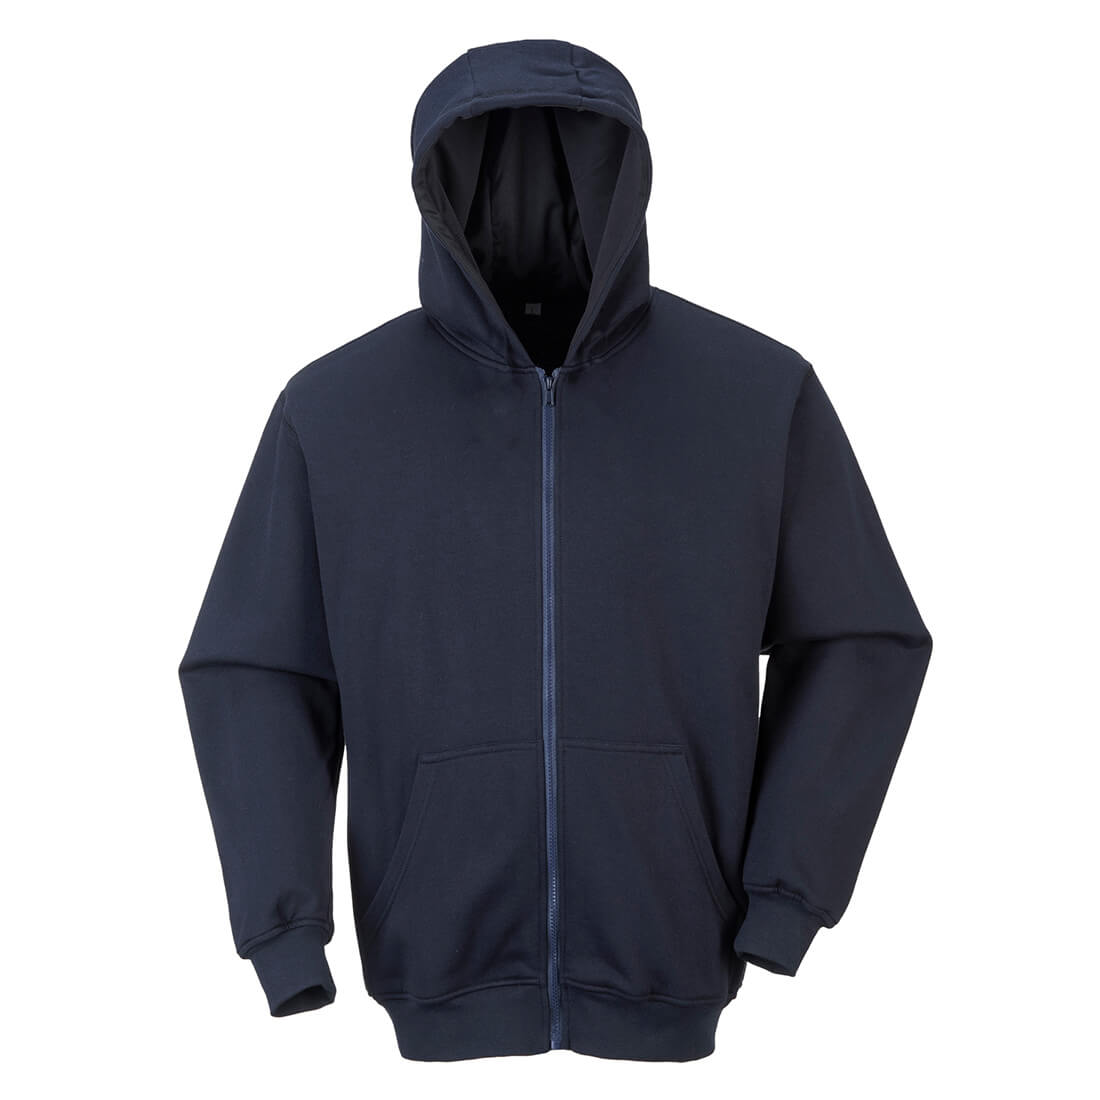 Image of Modaflame Mens Anti Static Flame Resistant Hoodie Navy 5XL